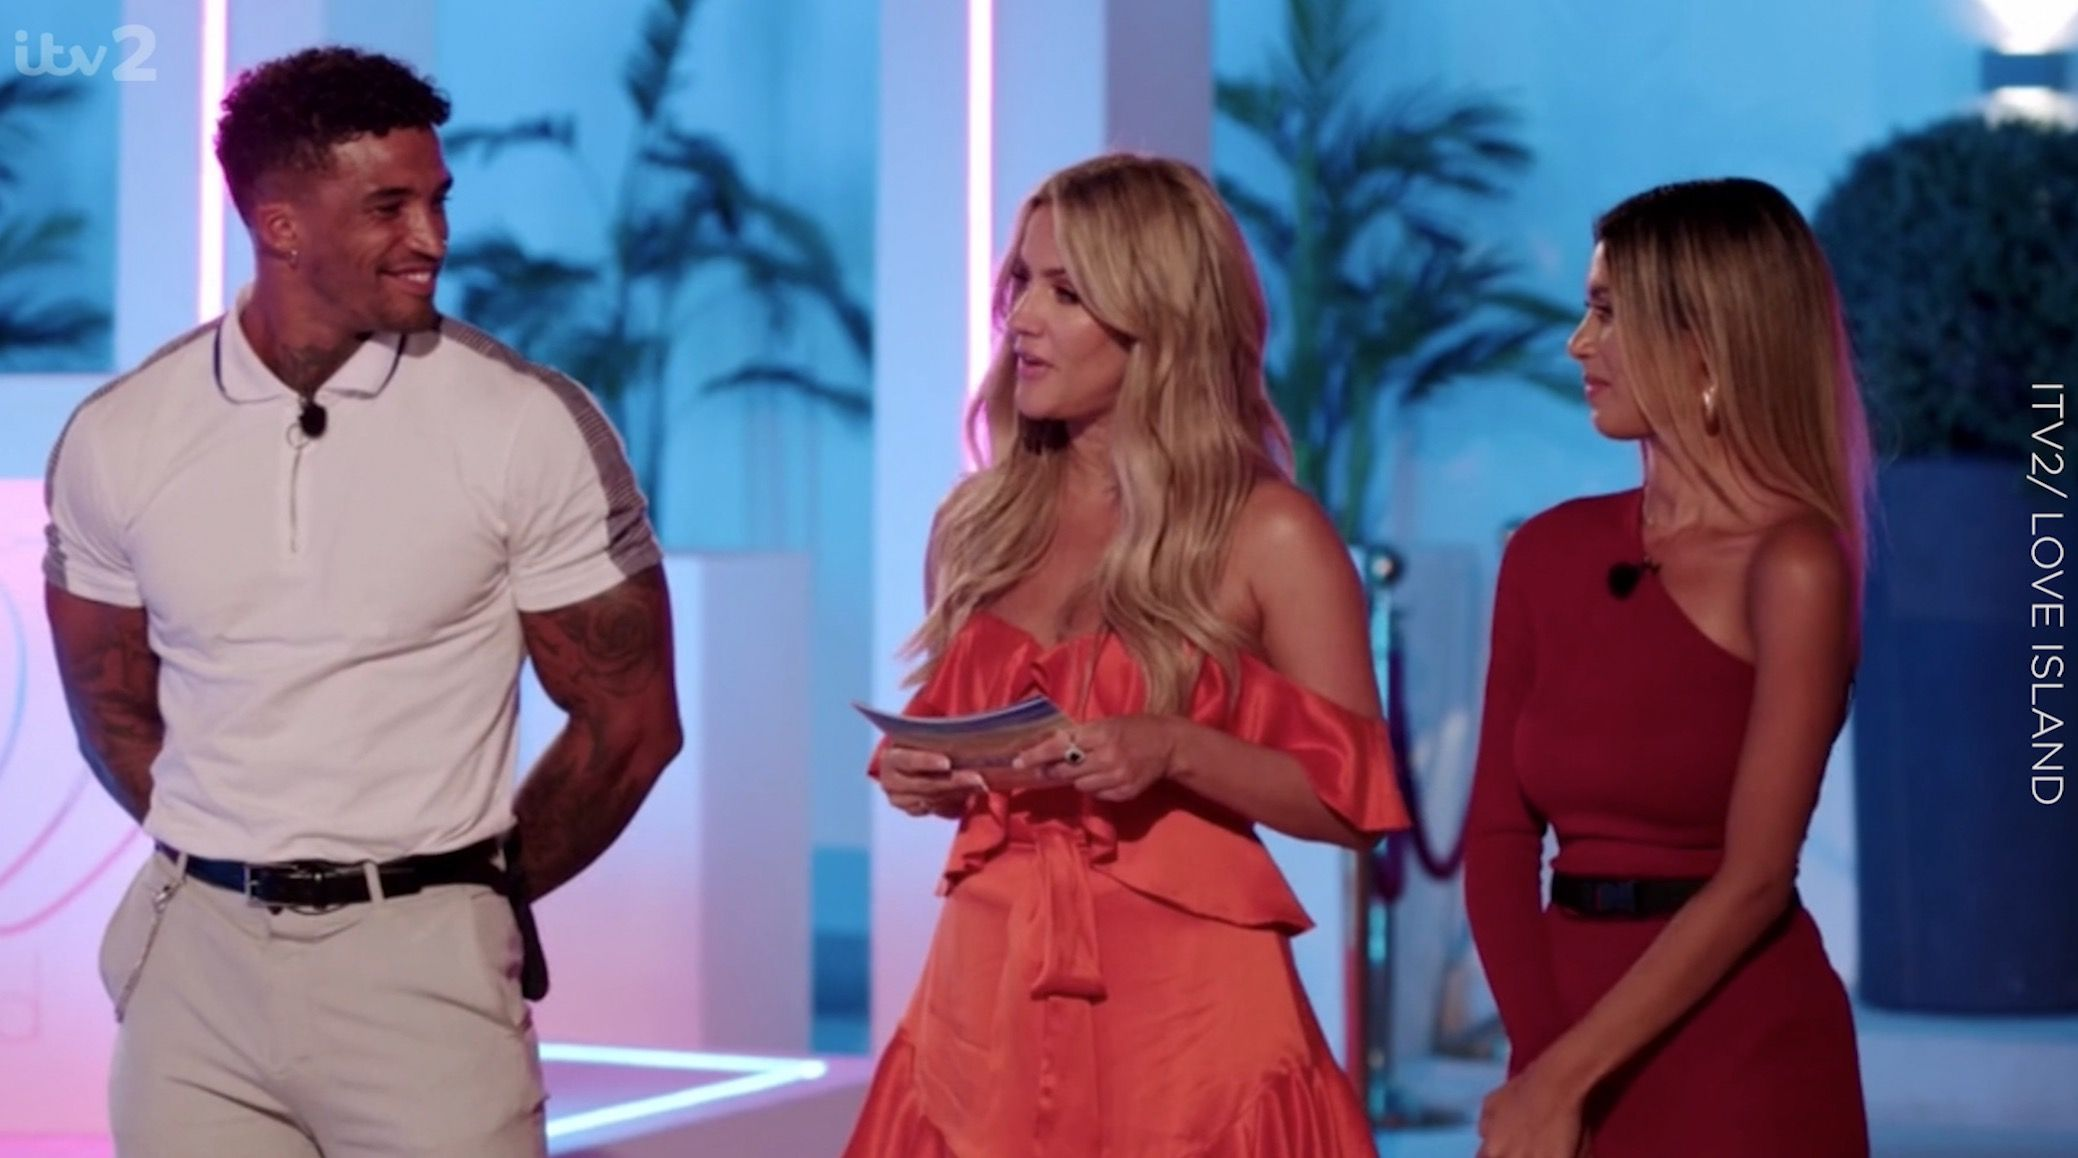 The surprising way Love Island's Joanna would react to Michael and Amber getting back together